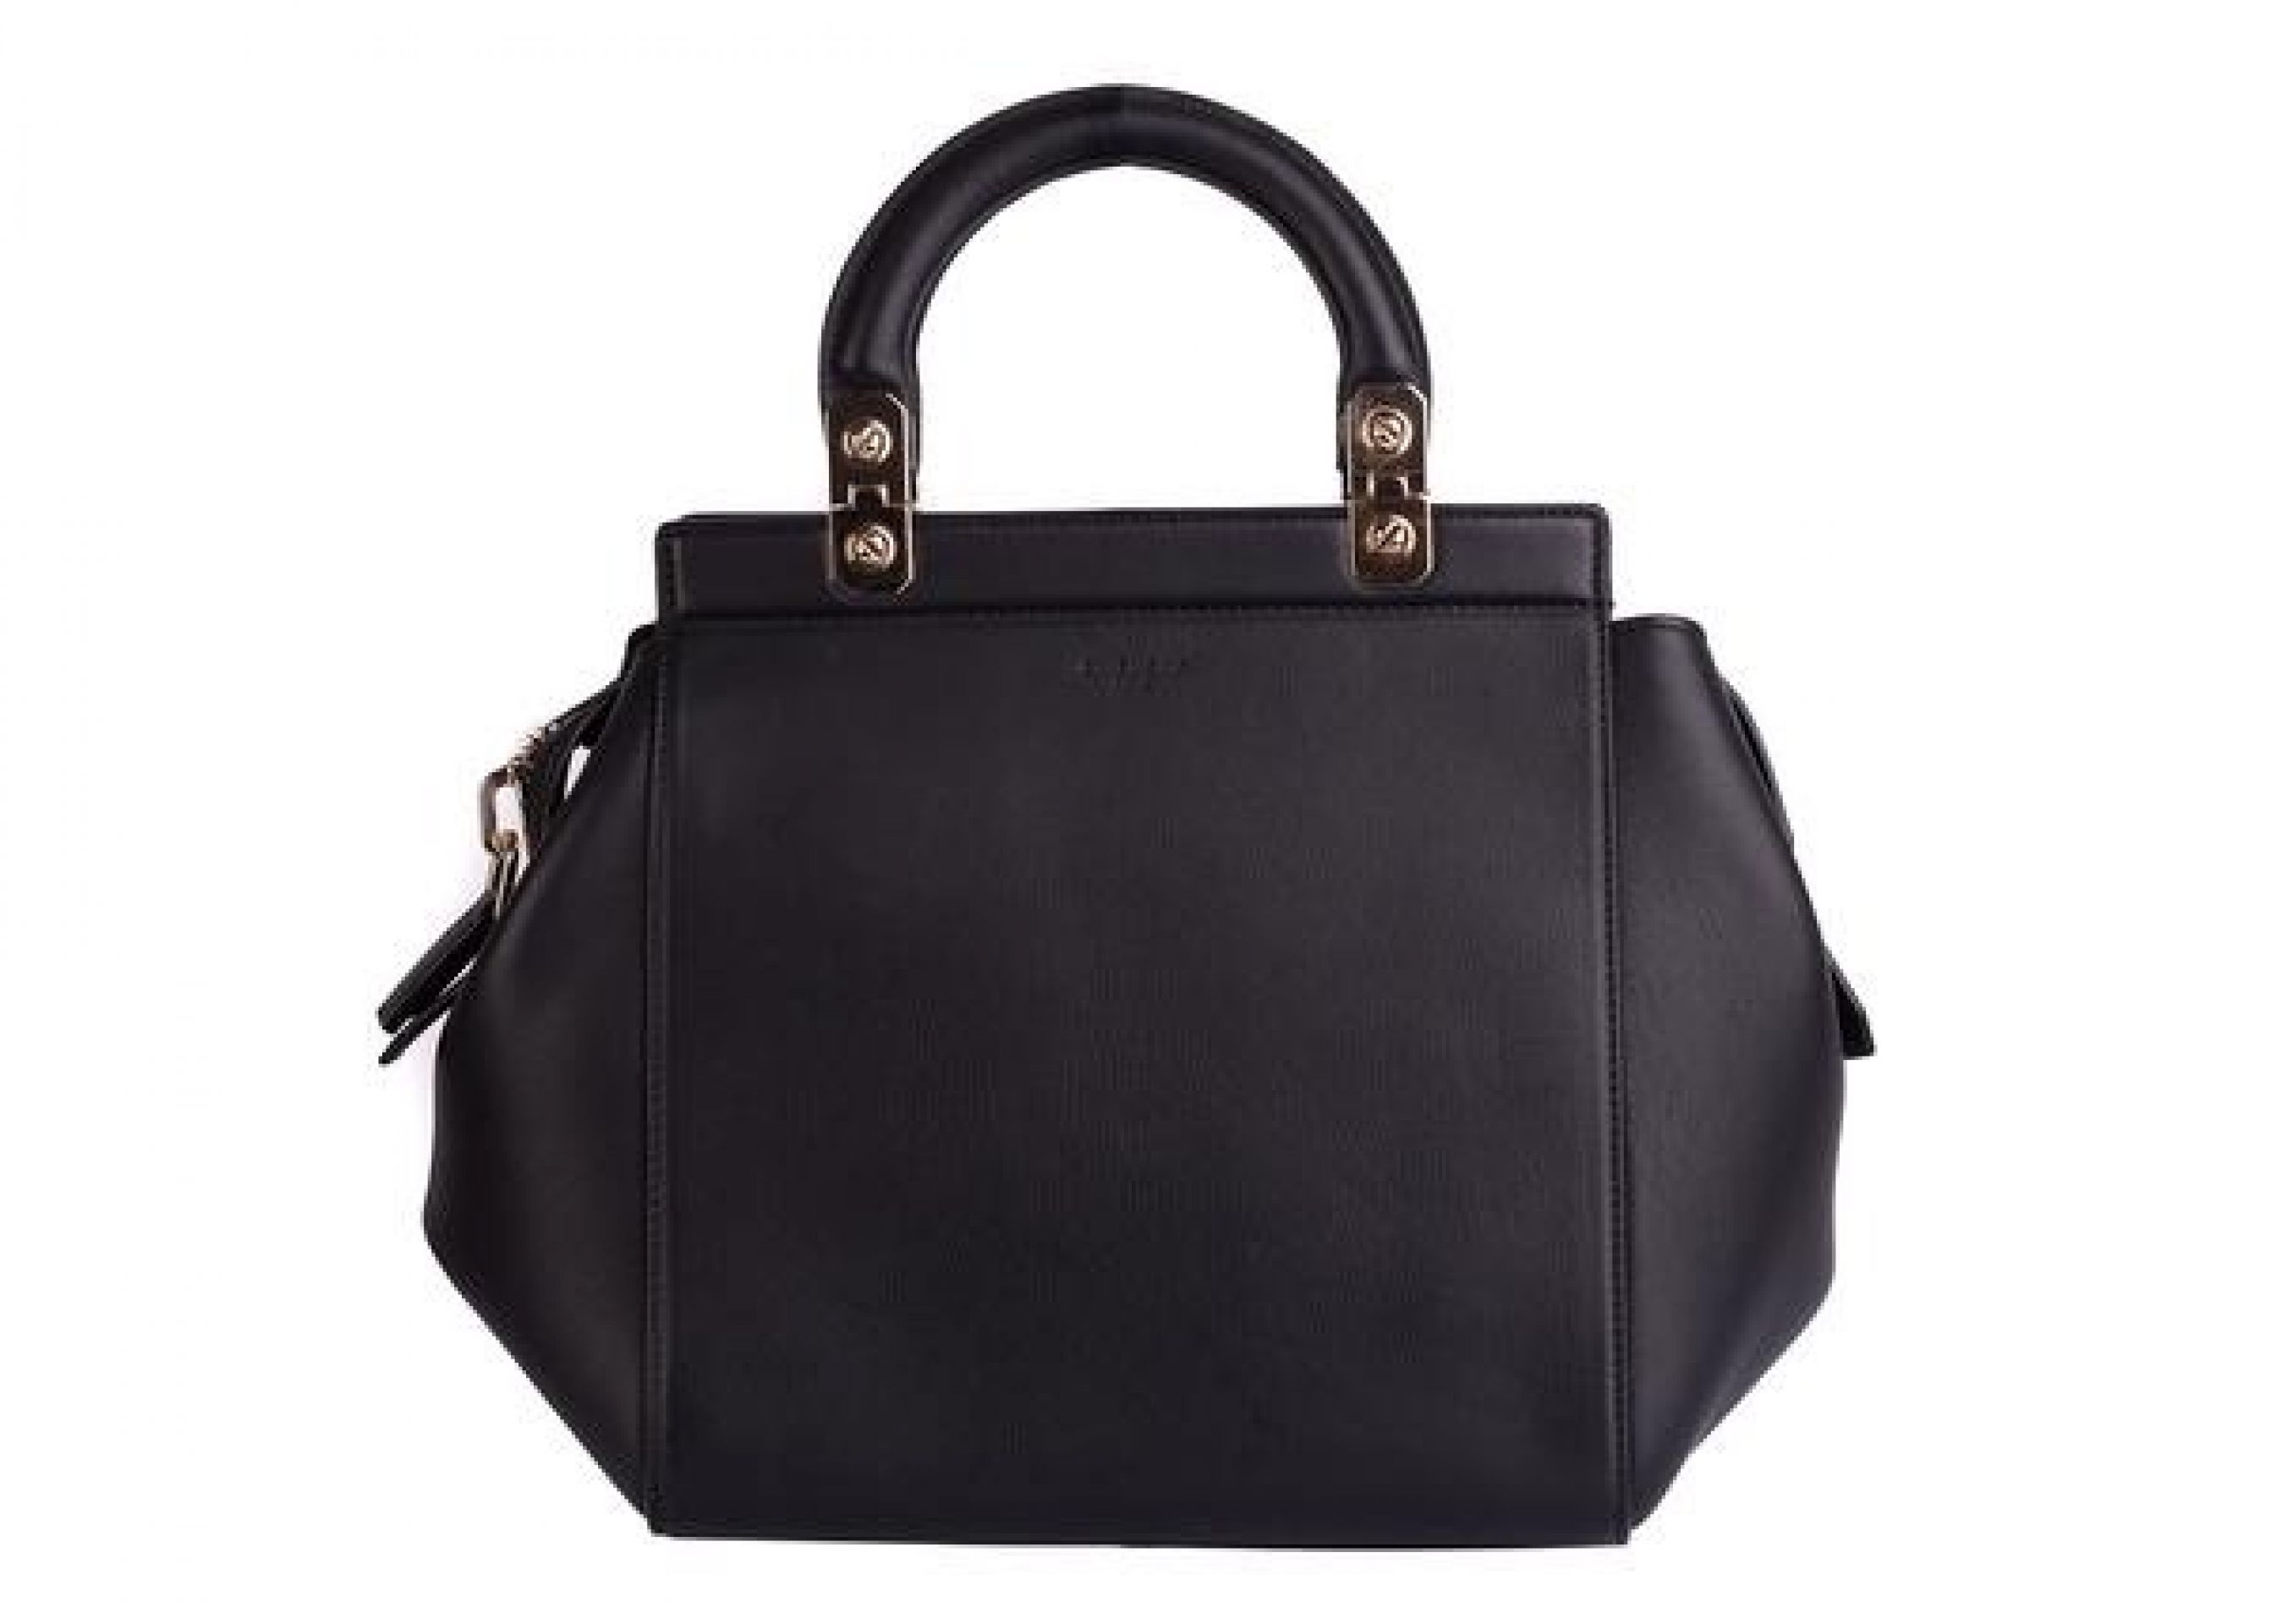 GIVENCHY WOMEN'S BLACK SMOOTH LEATHER HOUSE DE TOTE SATCHEL HAND BAG